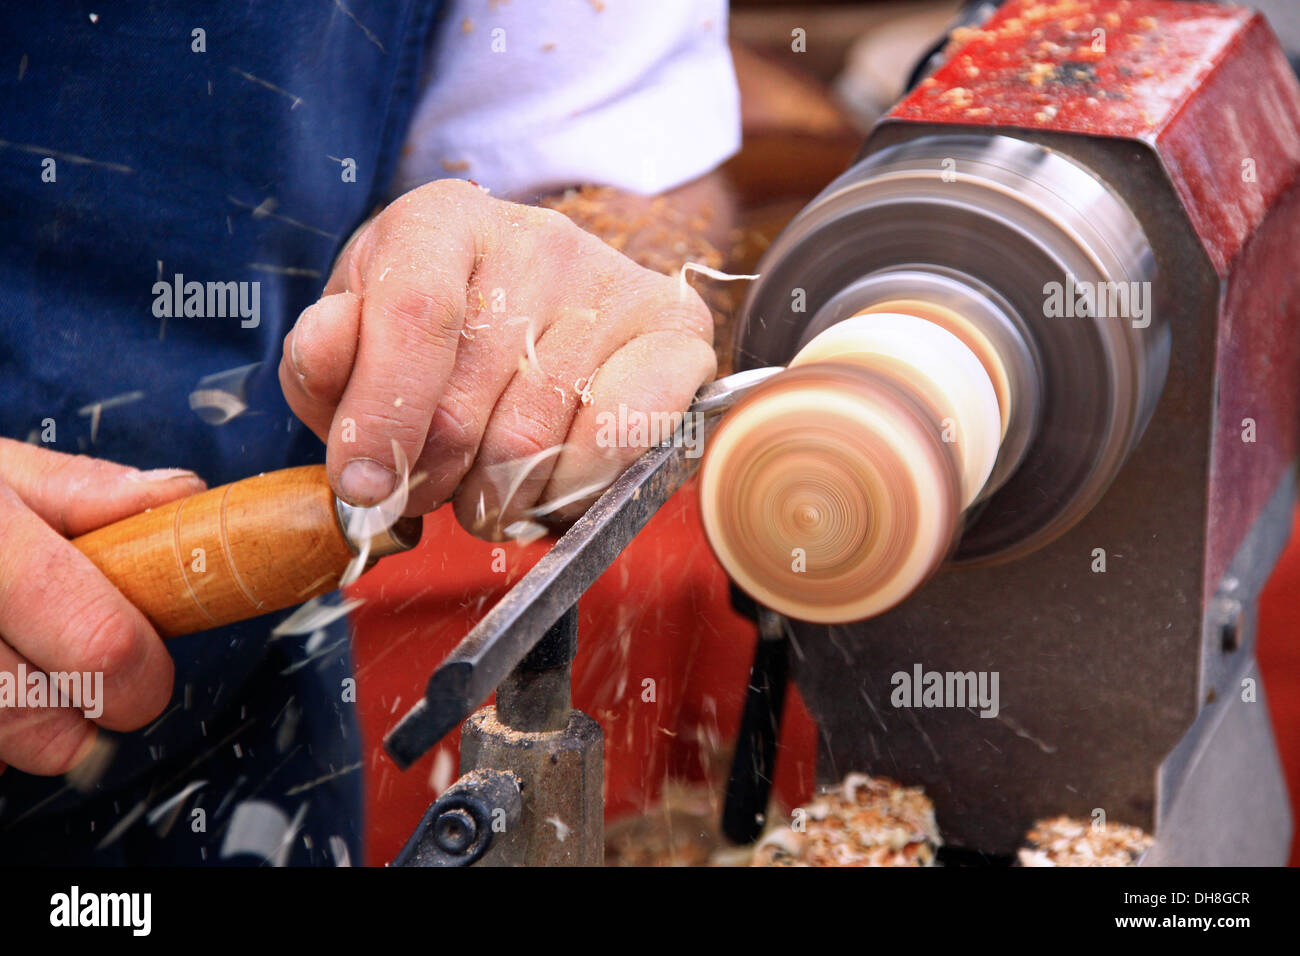 Woodworker handling gouge while working on wood with turning lathe in workshop of furniture maker Stock Photo